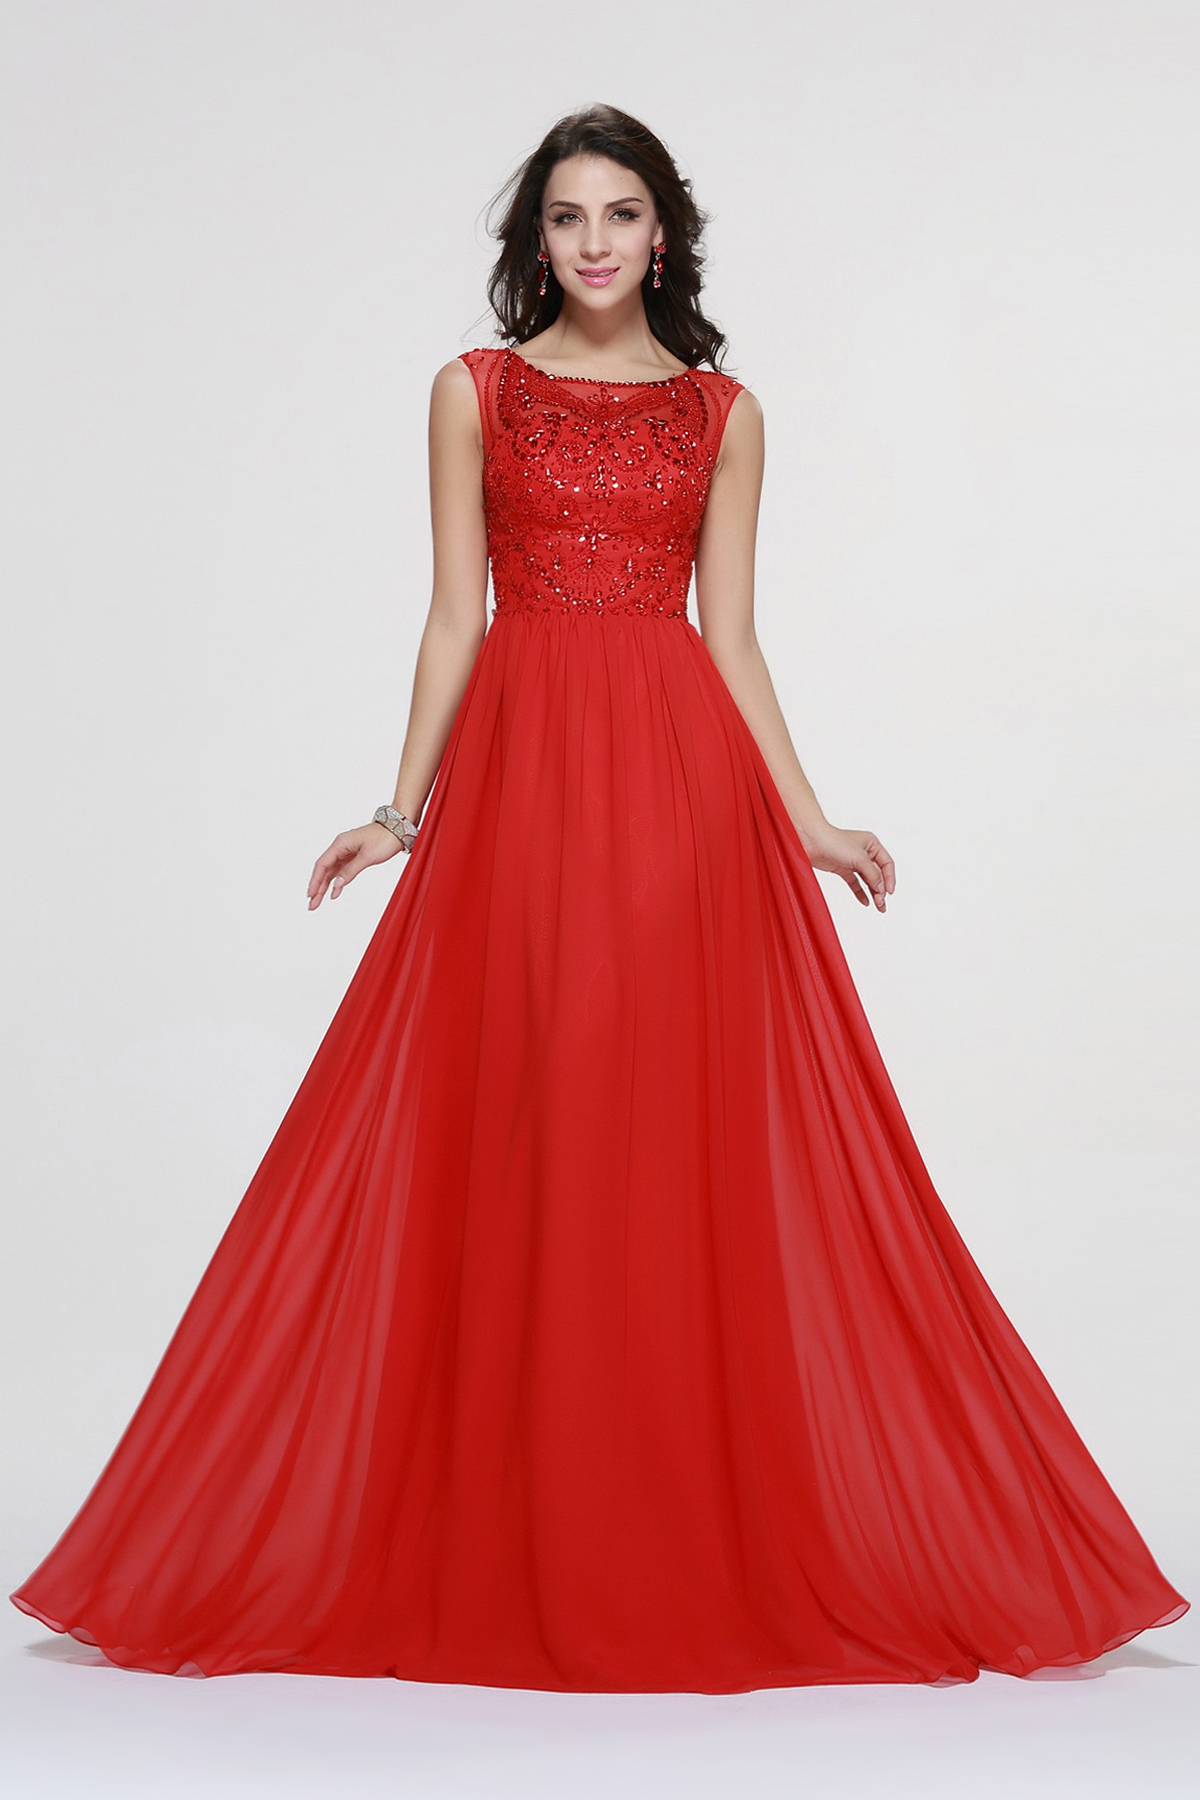 Sparkling Beaded A-line Red Long Prom Dress